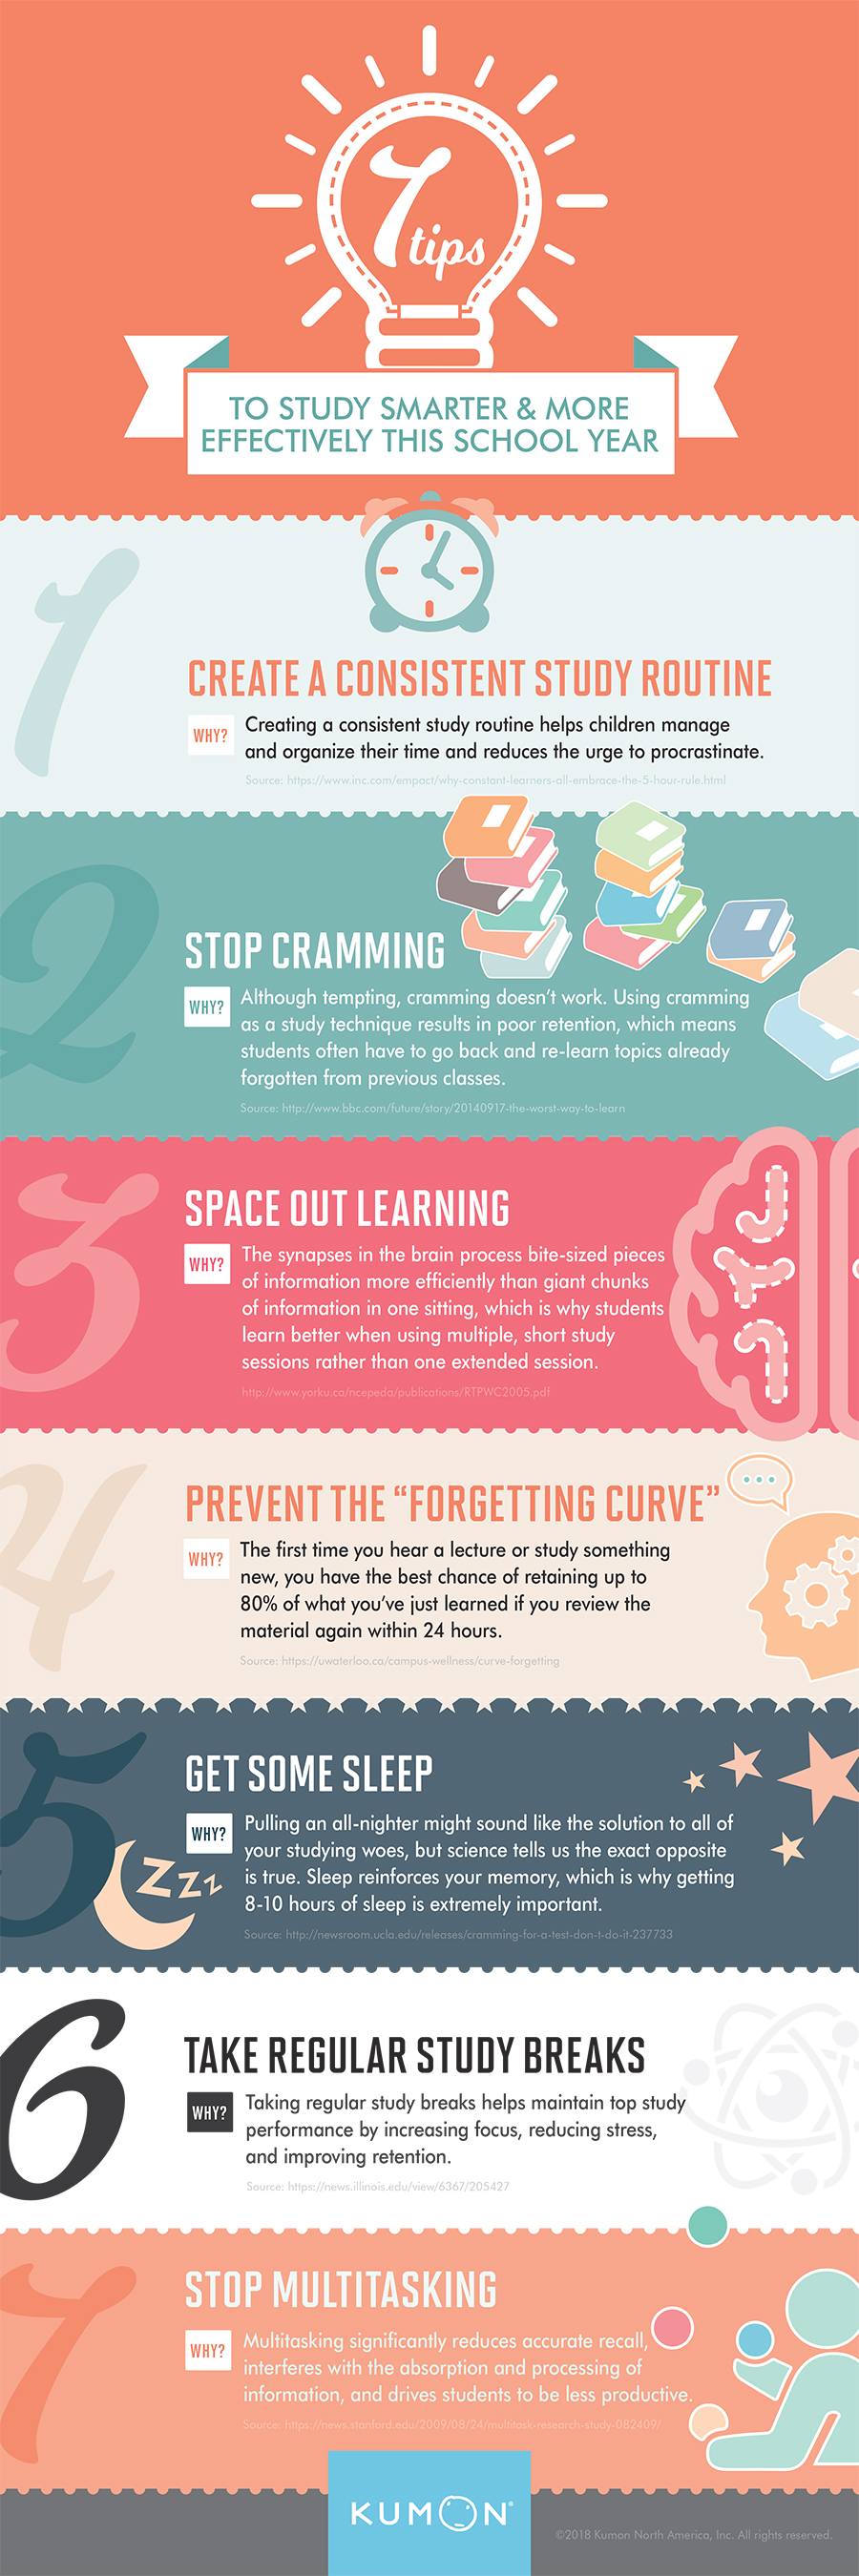 7 Tips to Study Smarter this School Year